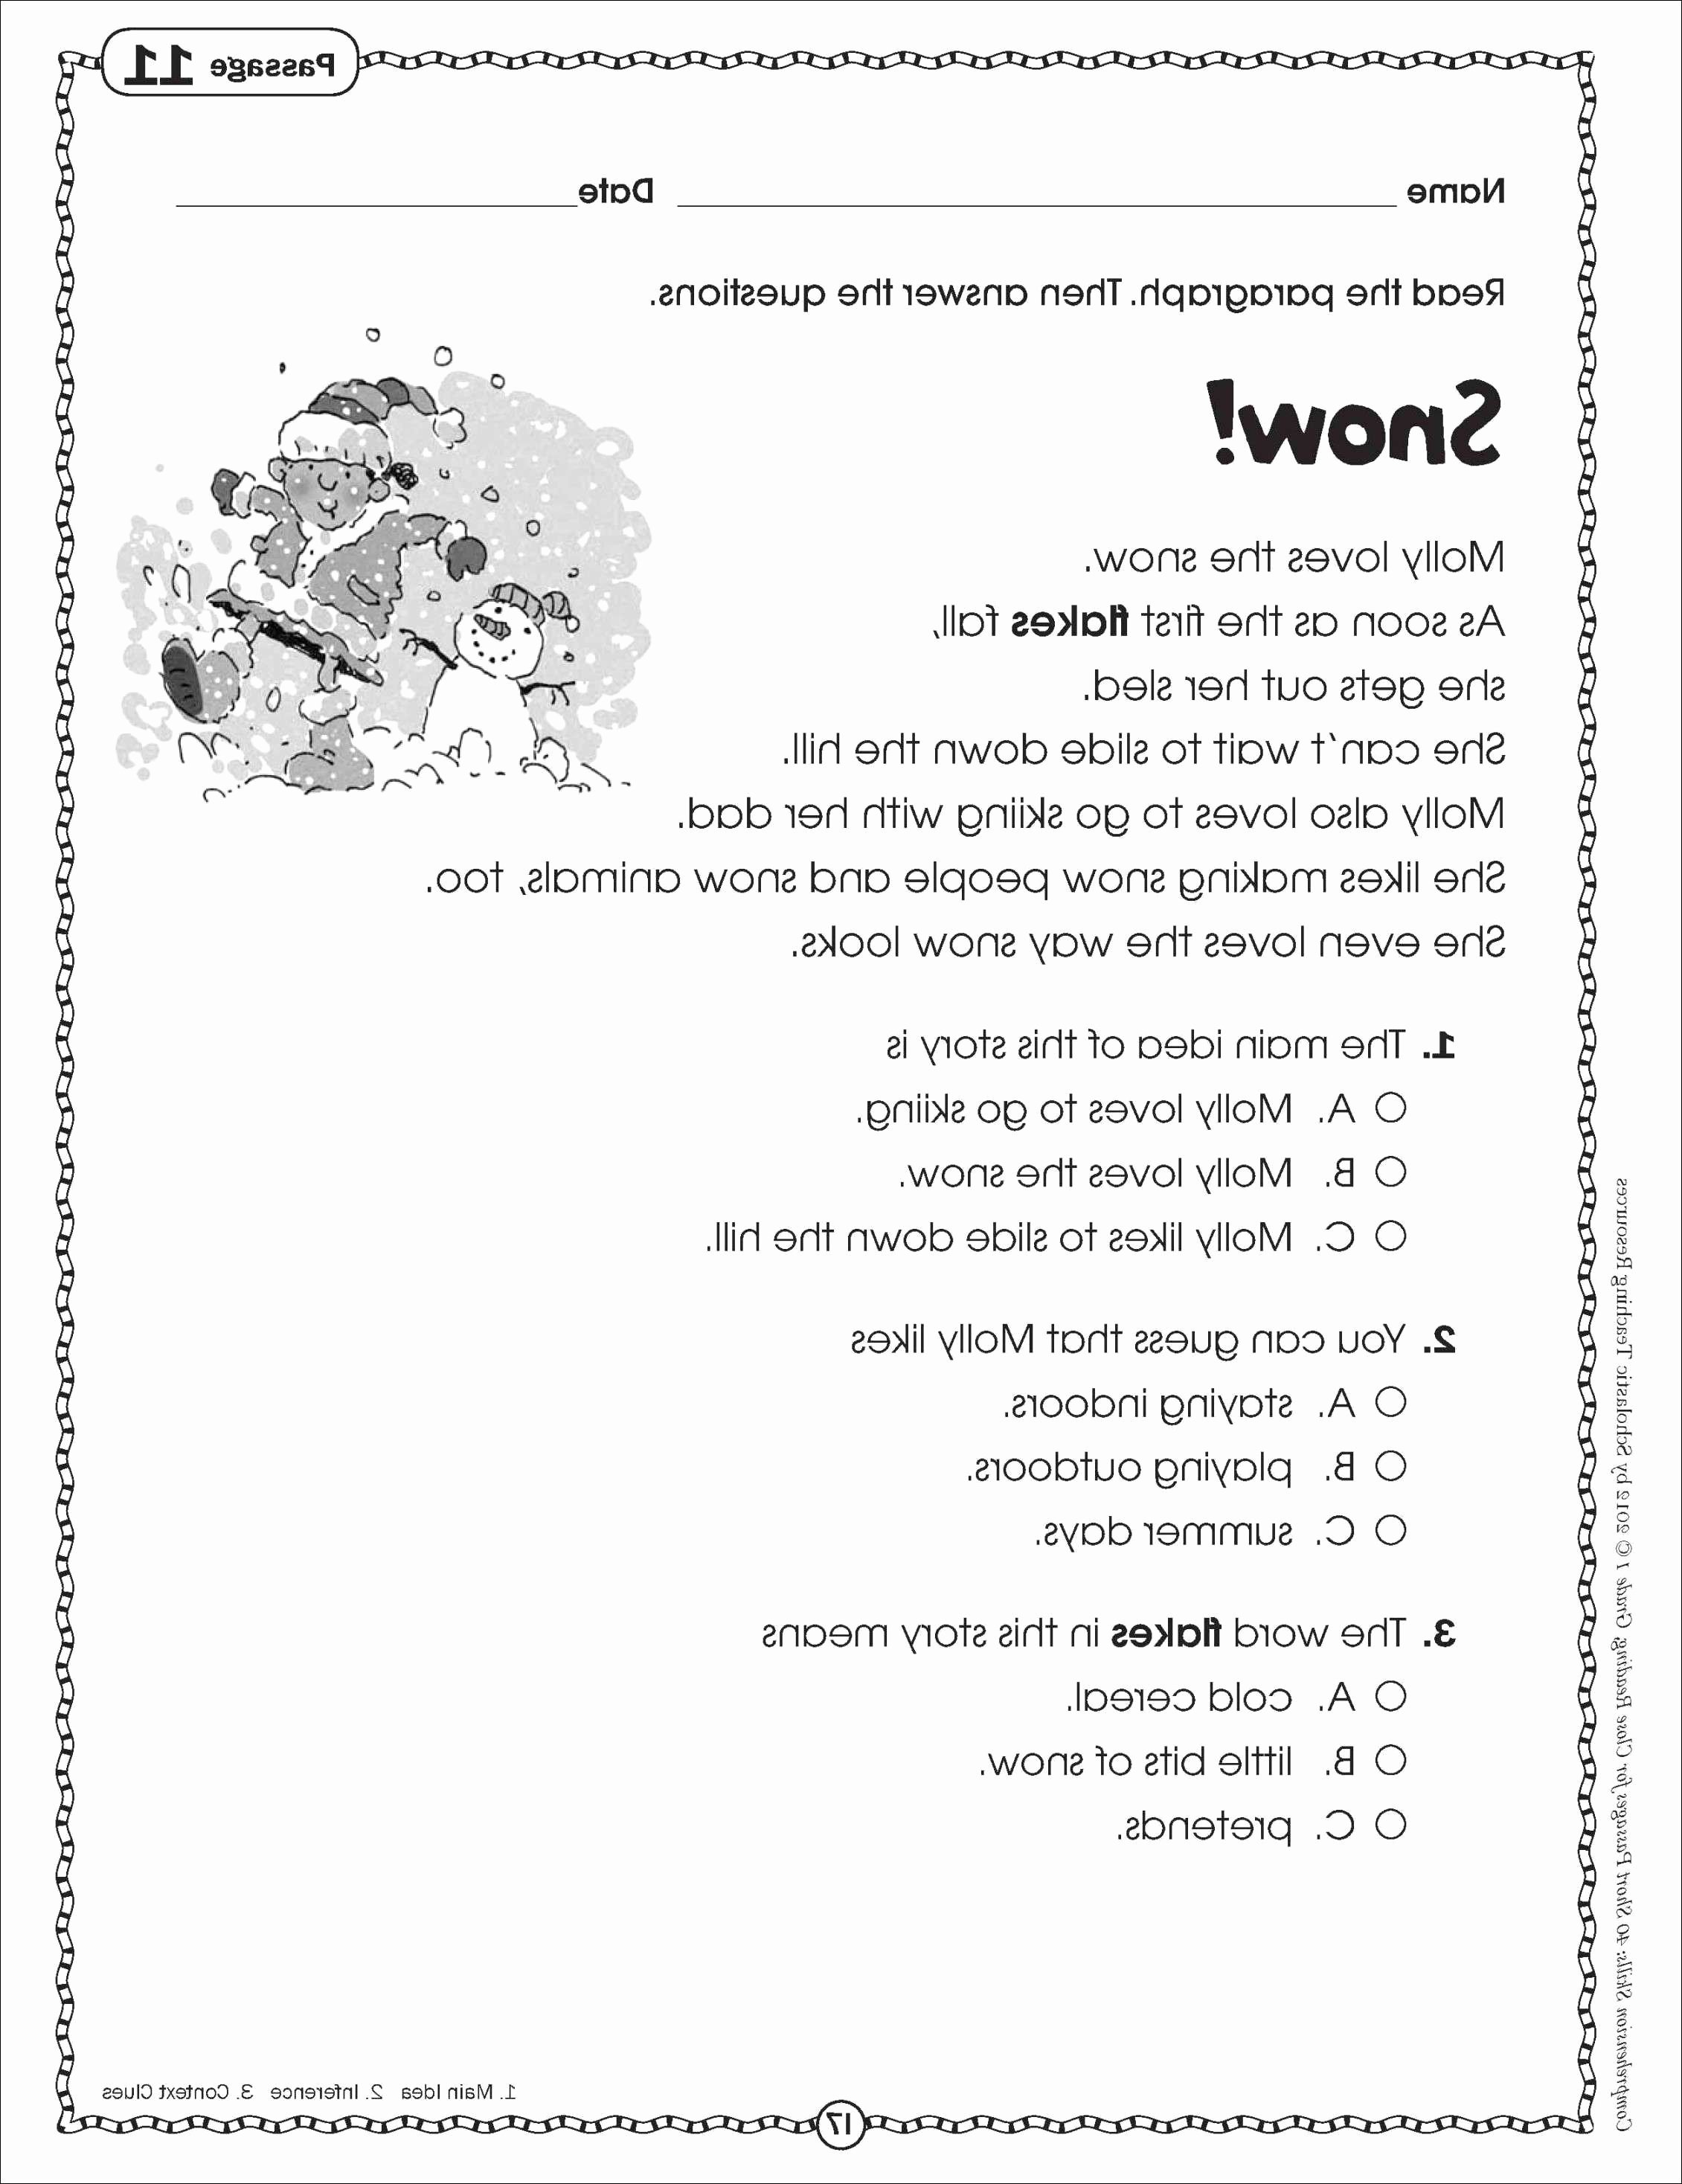 Cnn Students News Worksheet Lovely Cnn Student News Worksheet Worksheet Idea Template